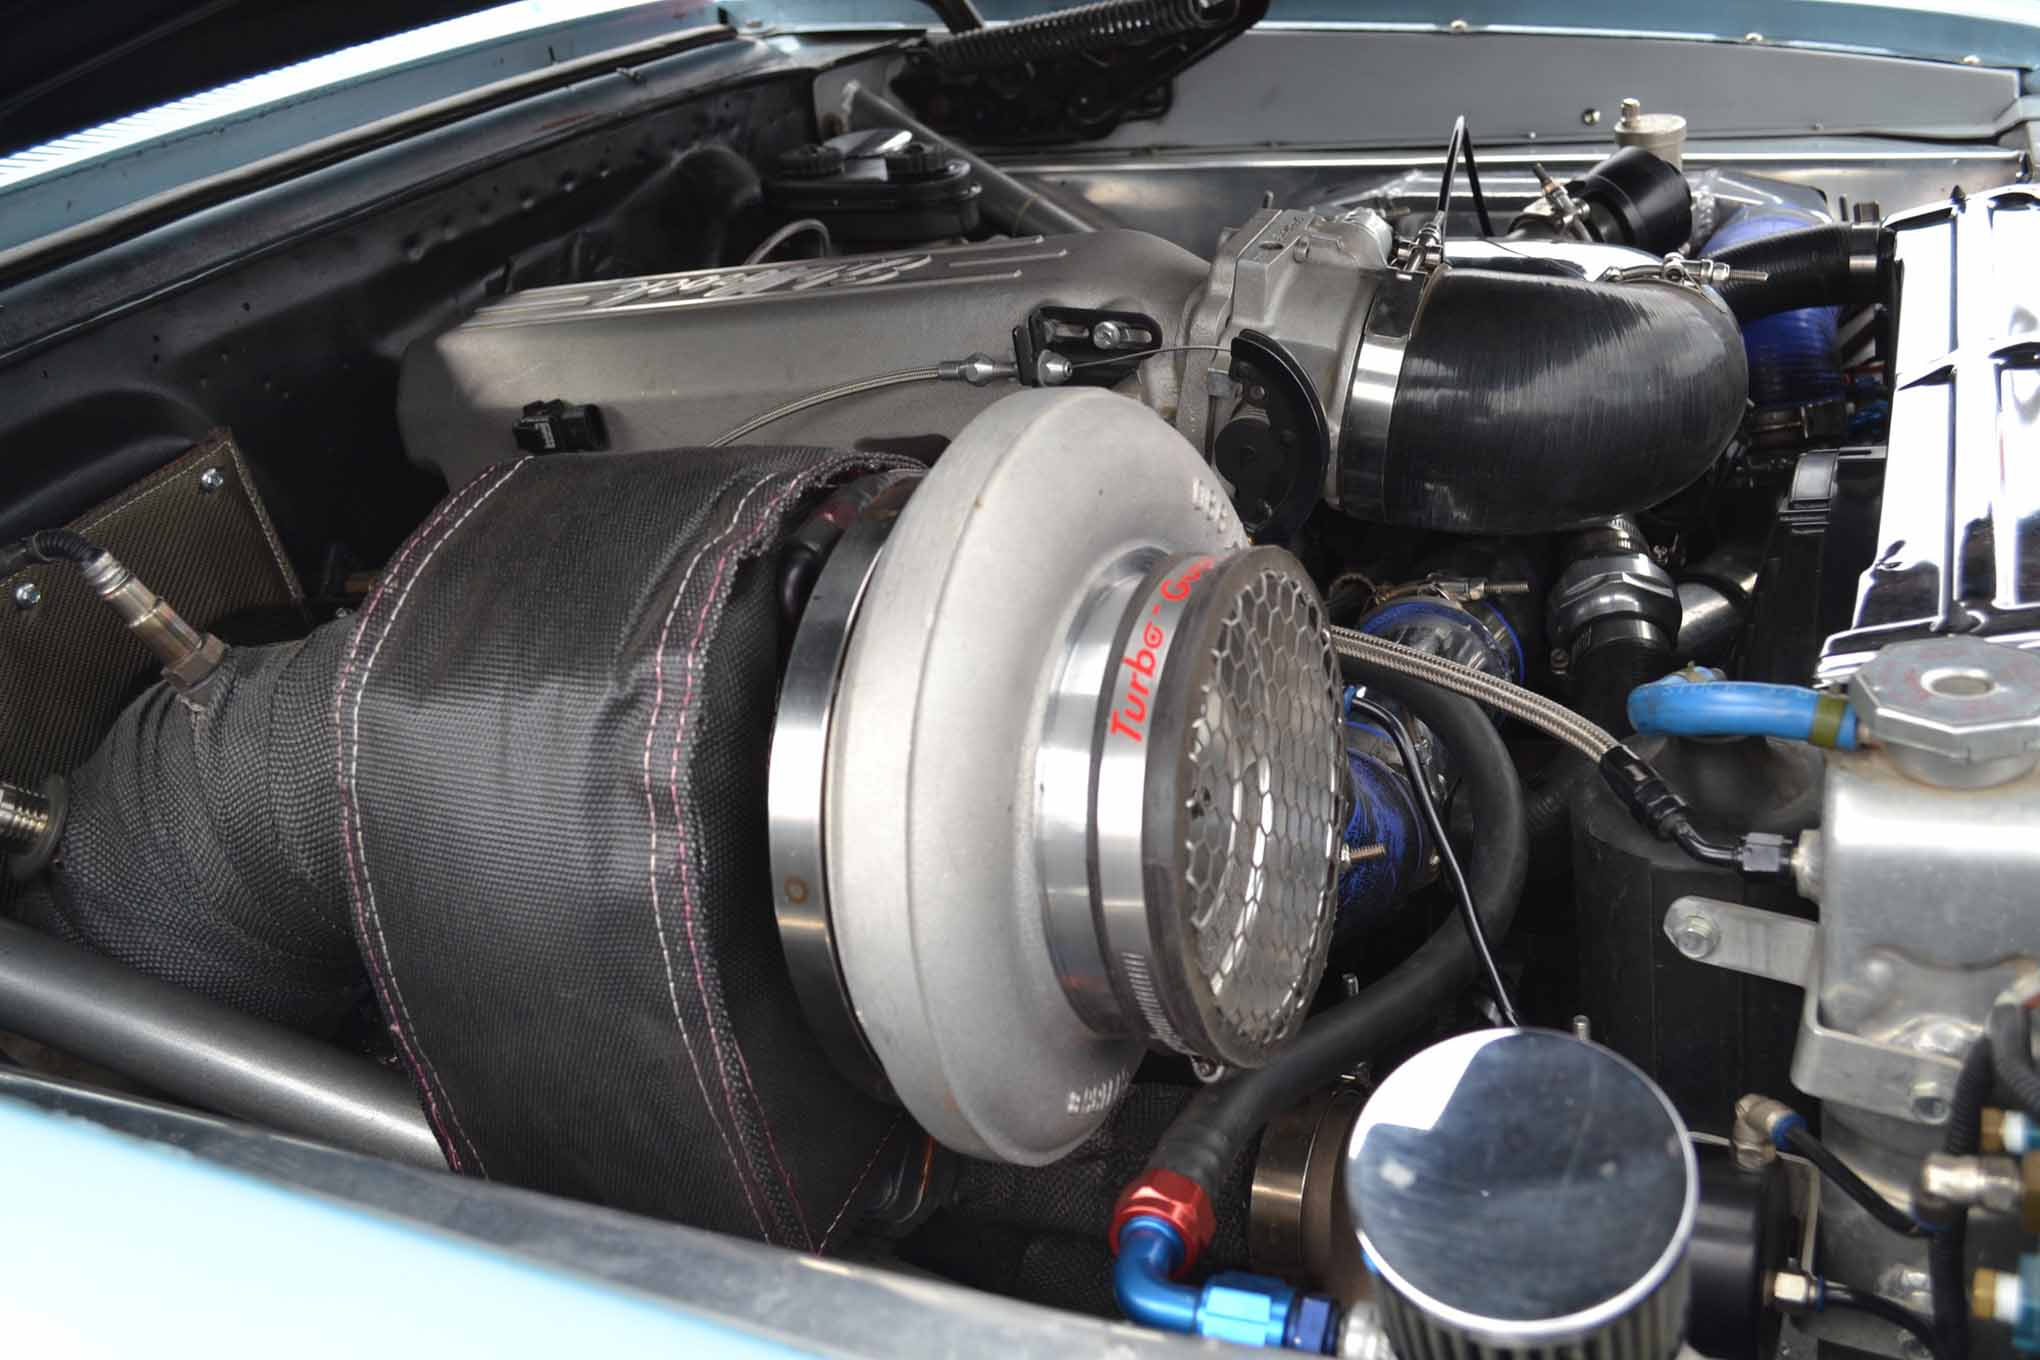 This LS-based engine propels a small-tire 1963 Nova street car to mid-8s, thanks to modern turbocharger technology. Even with a big, single 88mm on a relatively small engine, owner Jim Willis said the car is unreal in its driveability and cruises down the freeway at 80 mph, thanks to 3.20 gears.